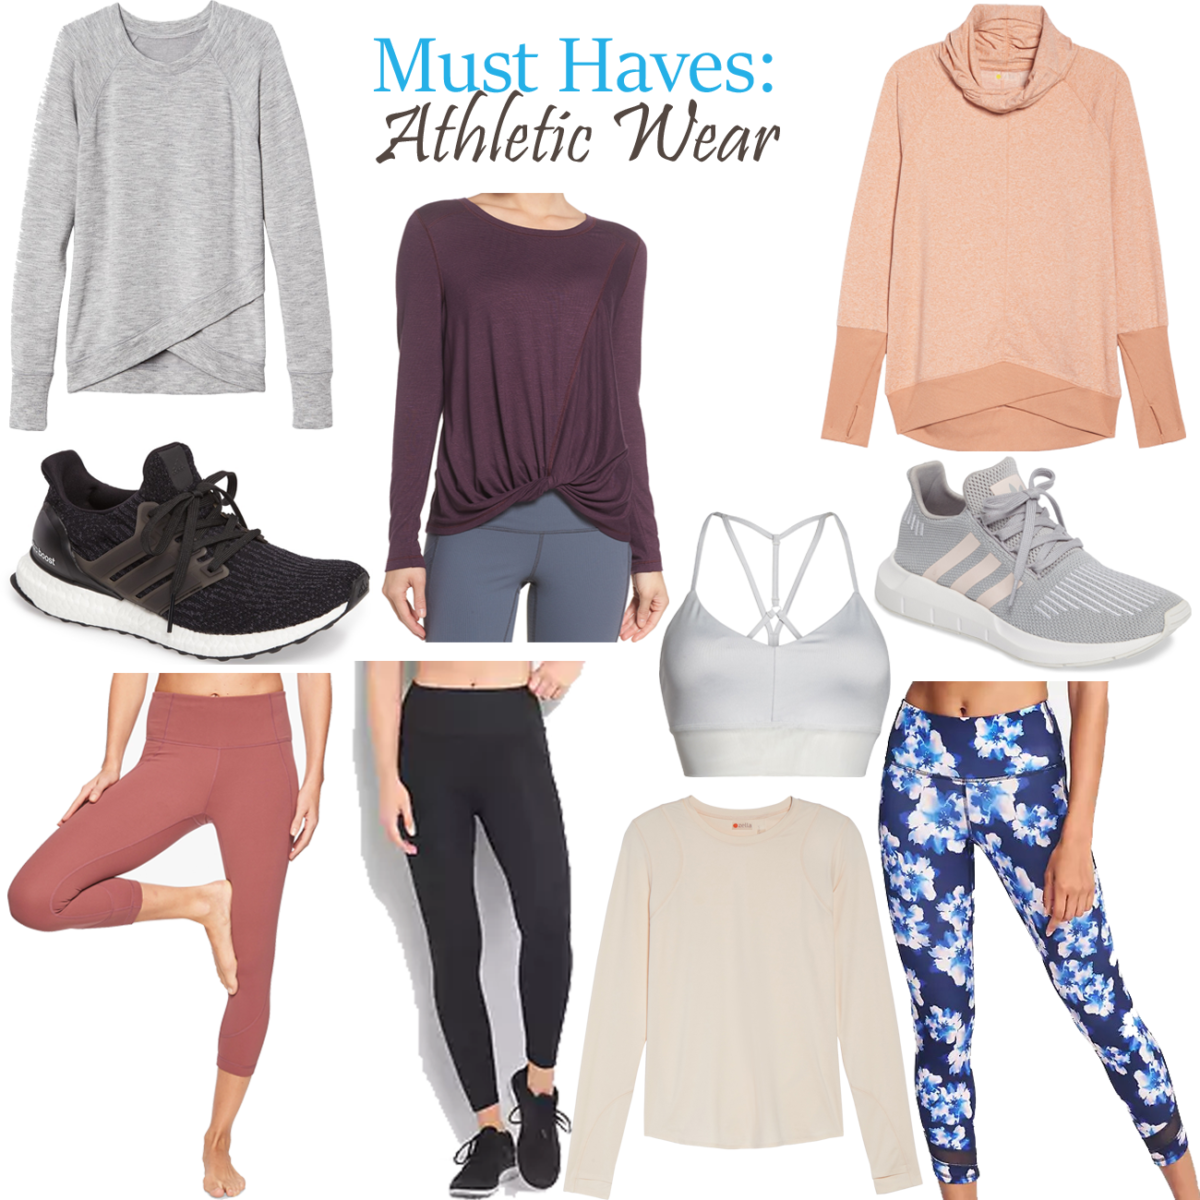 Must Haves: Activewear